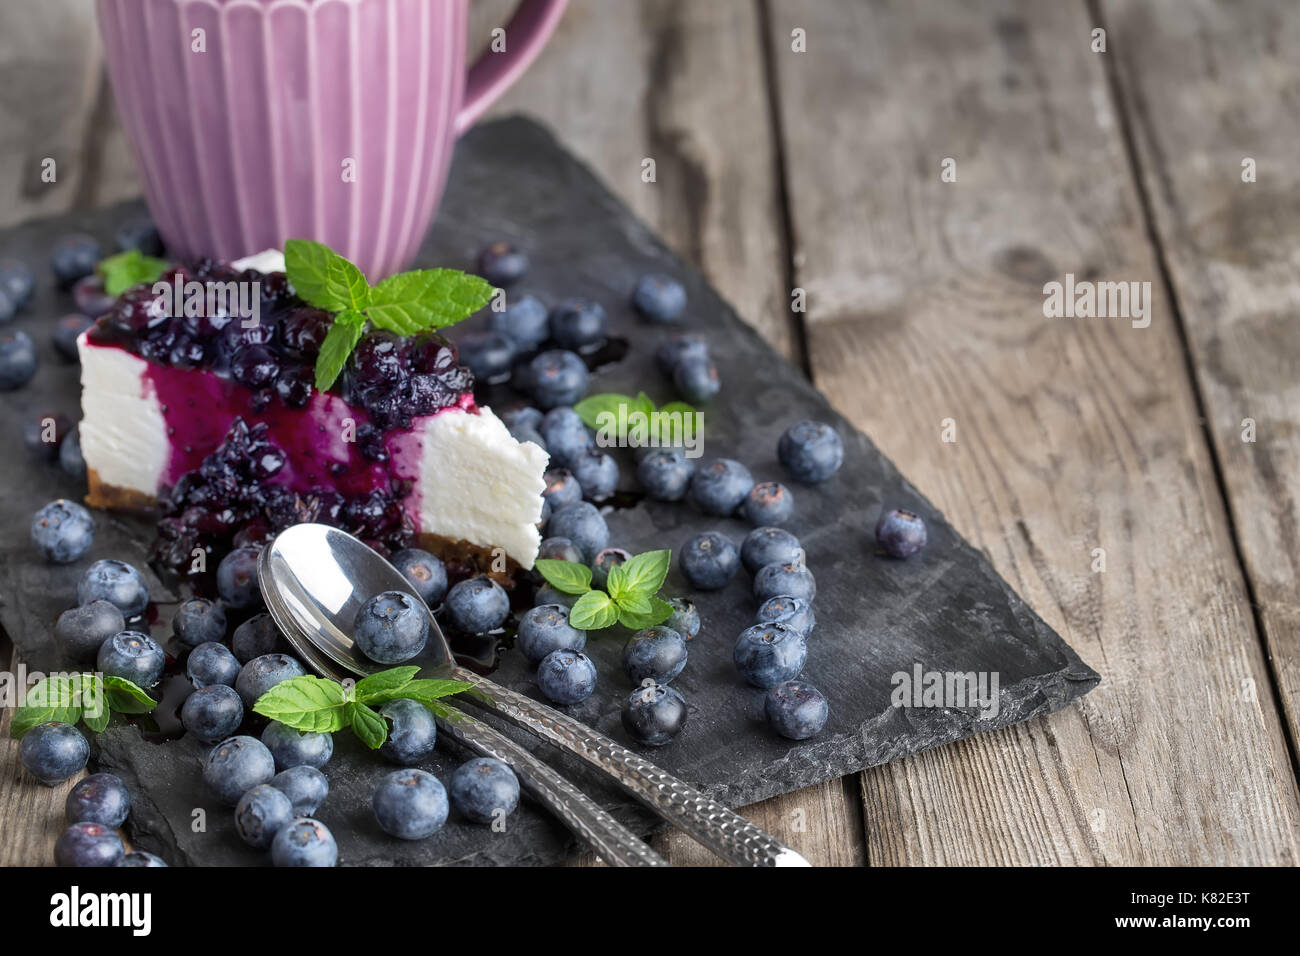 Piece of homemade cheesecake with blueberry jam and fresh ripe blueberries.Copy space background. - Stock Image